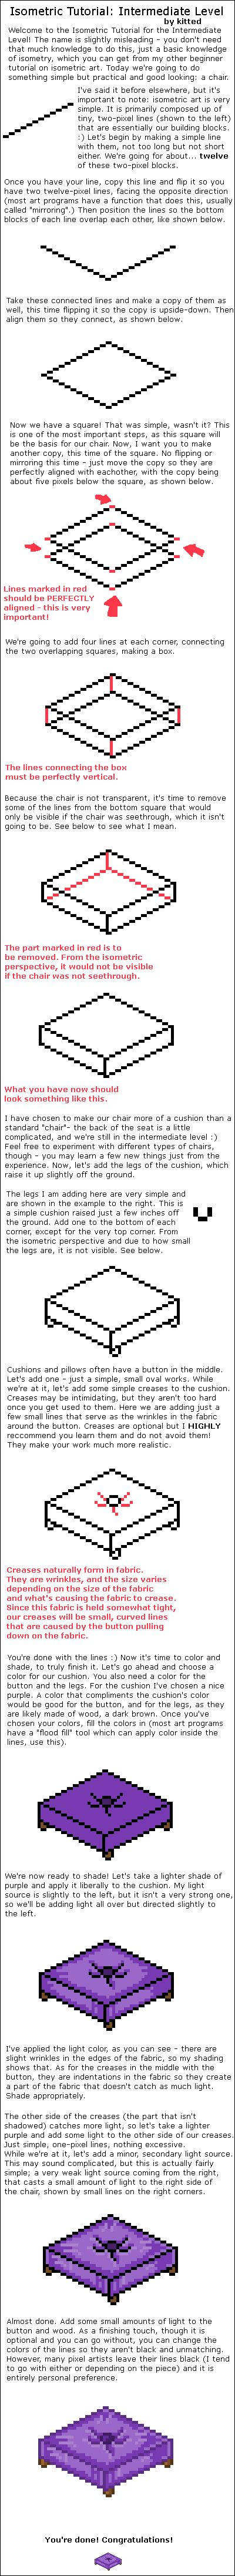 Isometric: Intermediate Level by kitted on DeviantArt